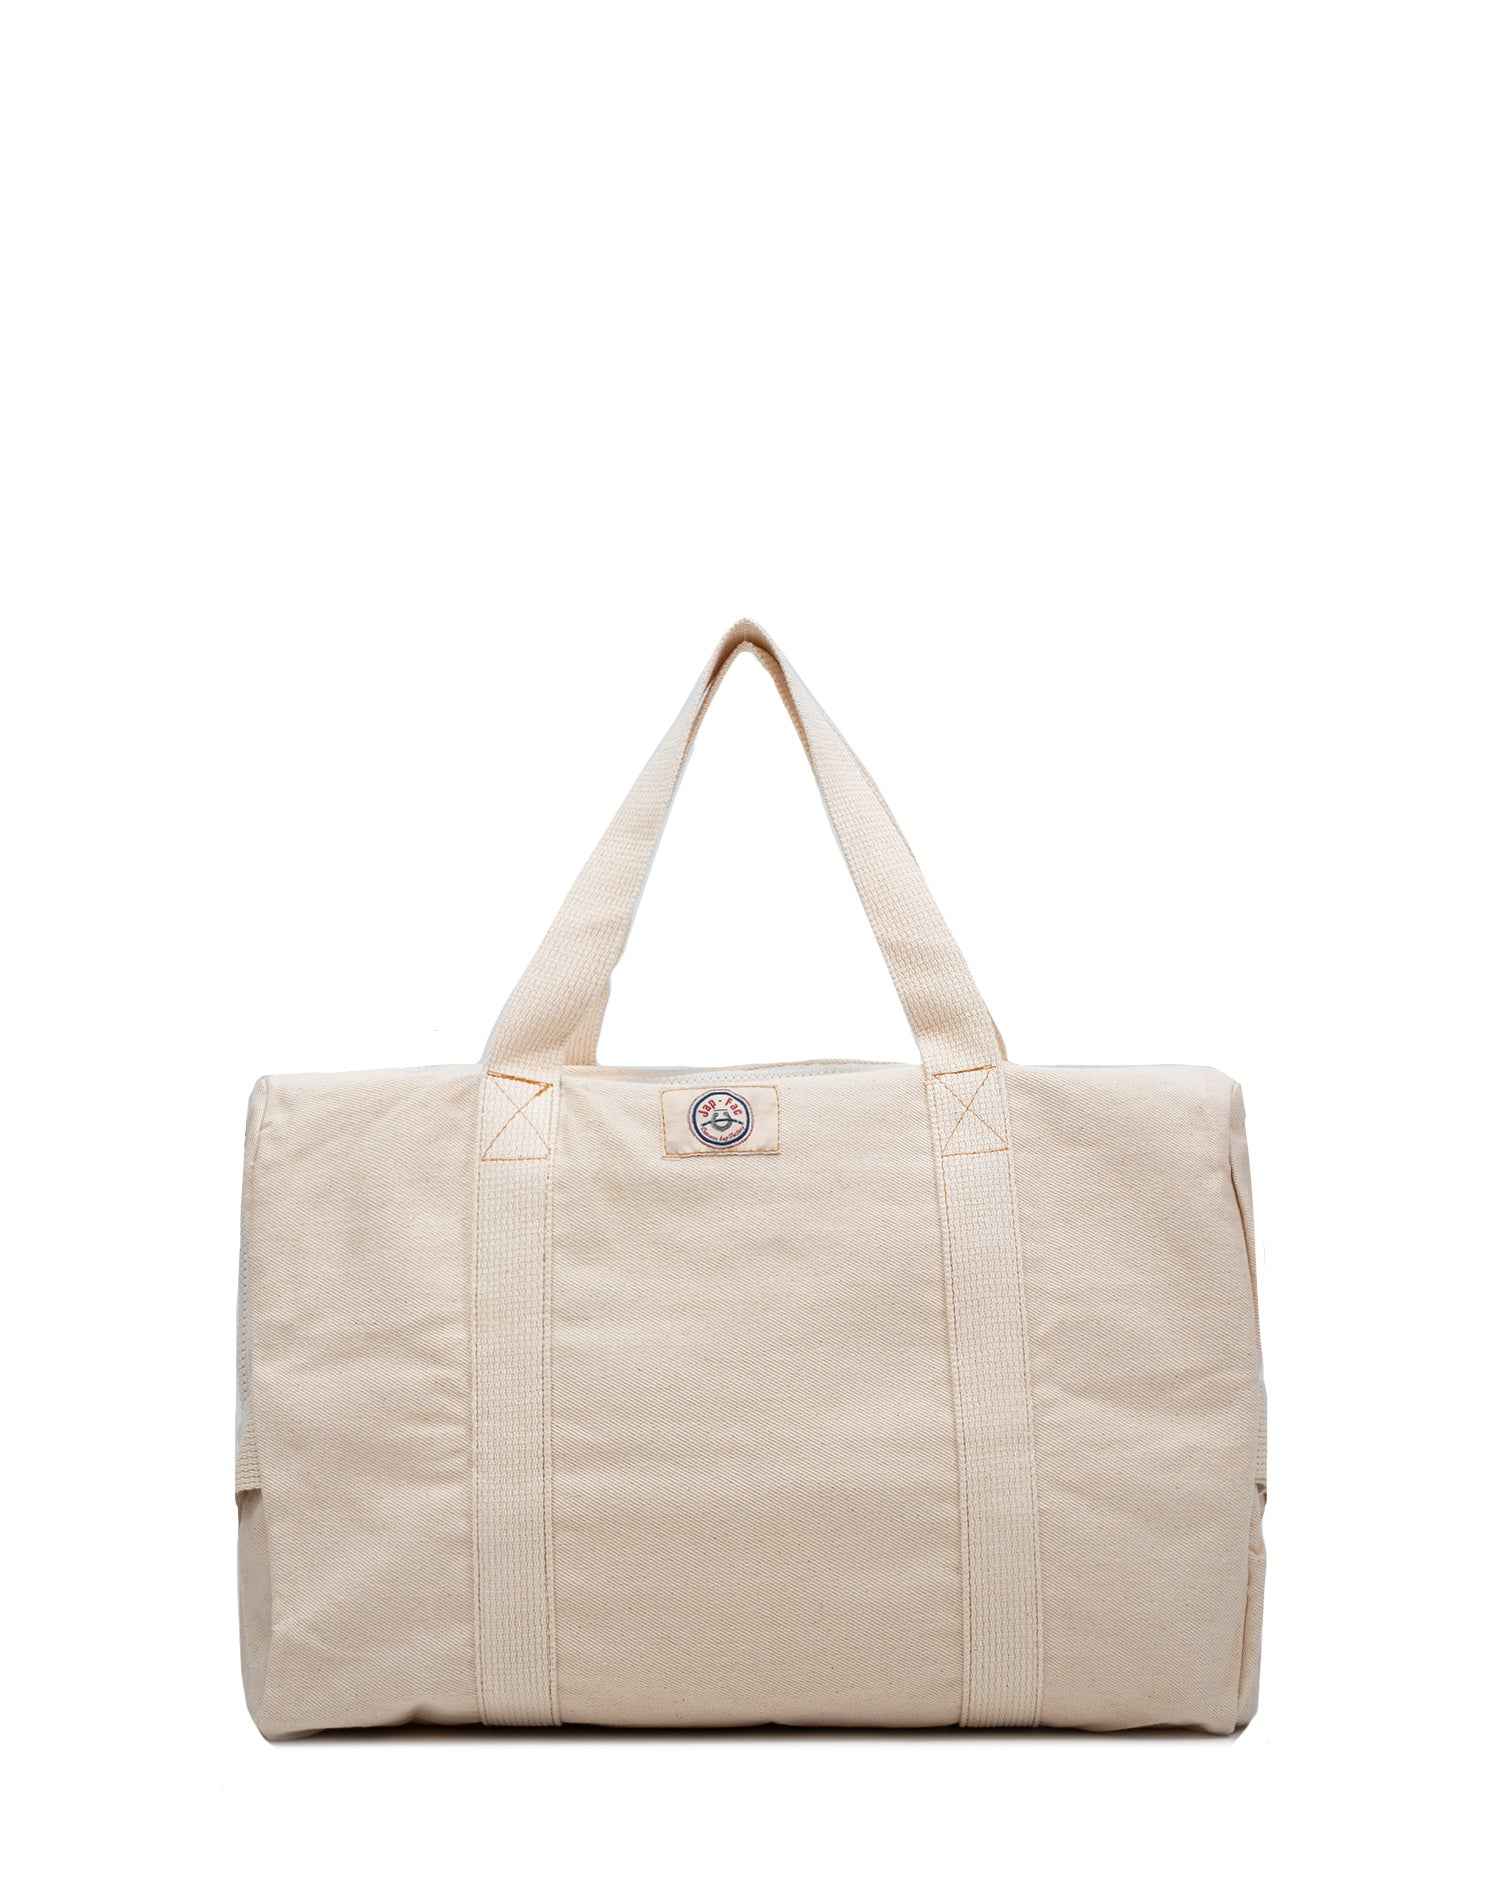 White Canvas Street Duffel Bag.白色帆布行李袋